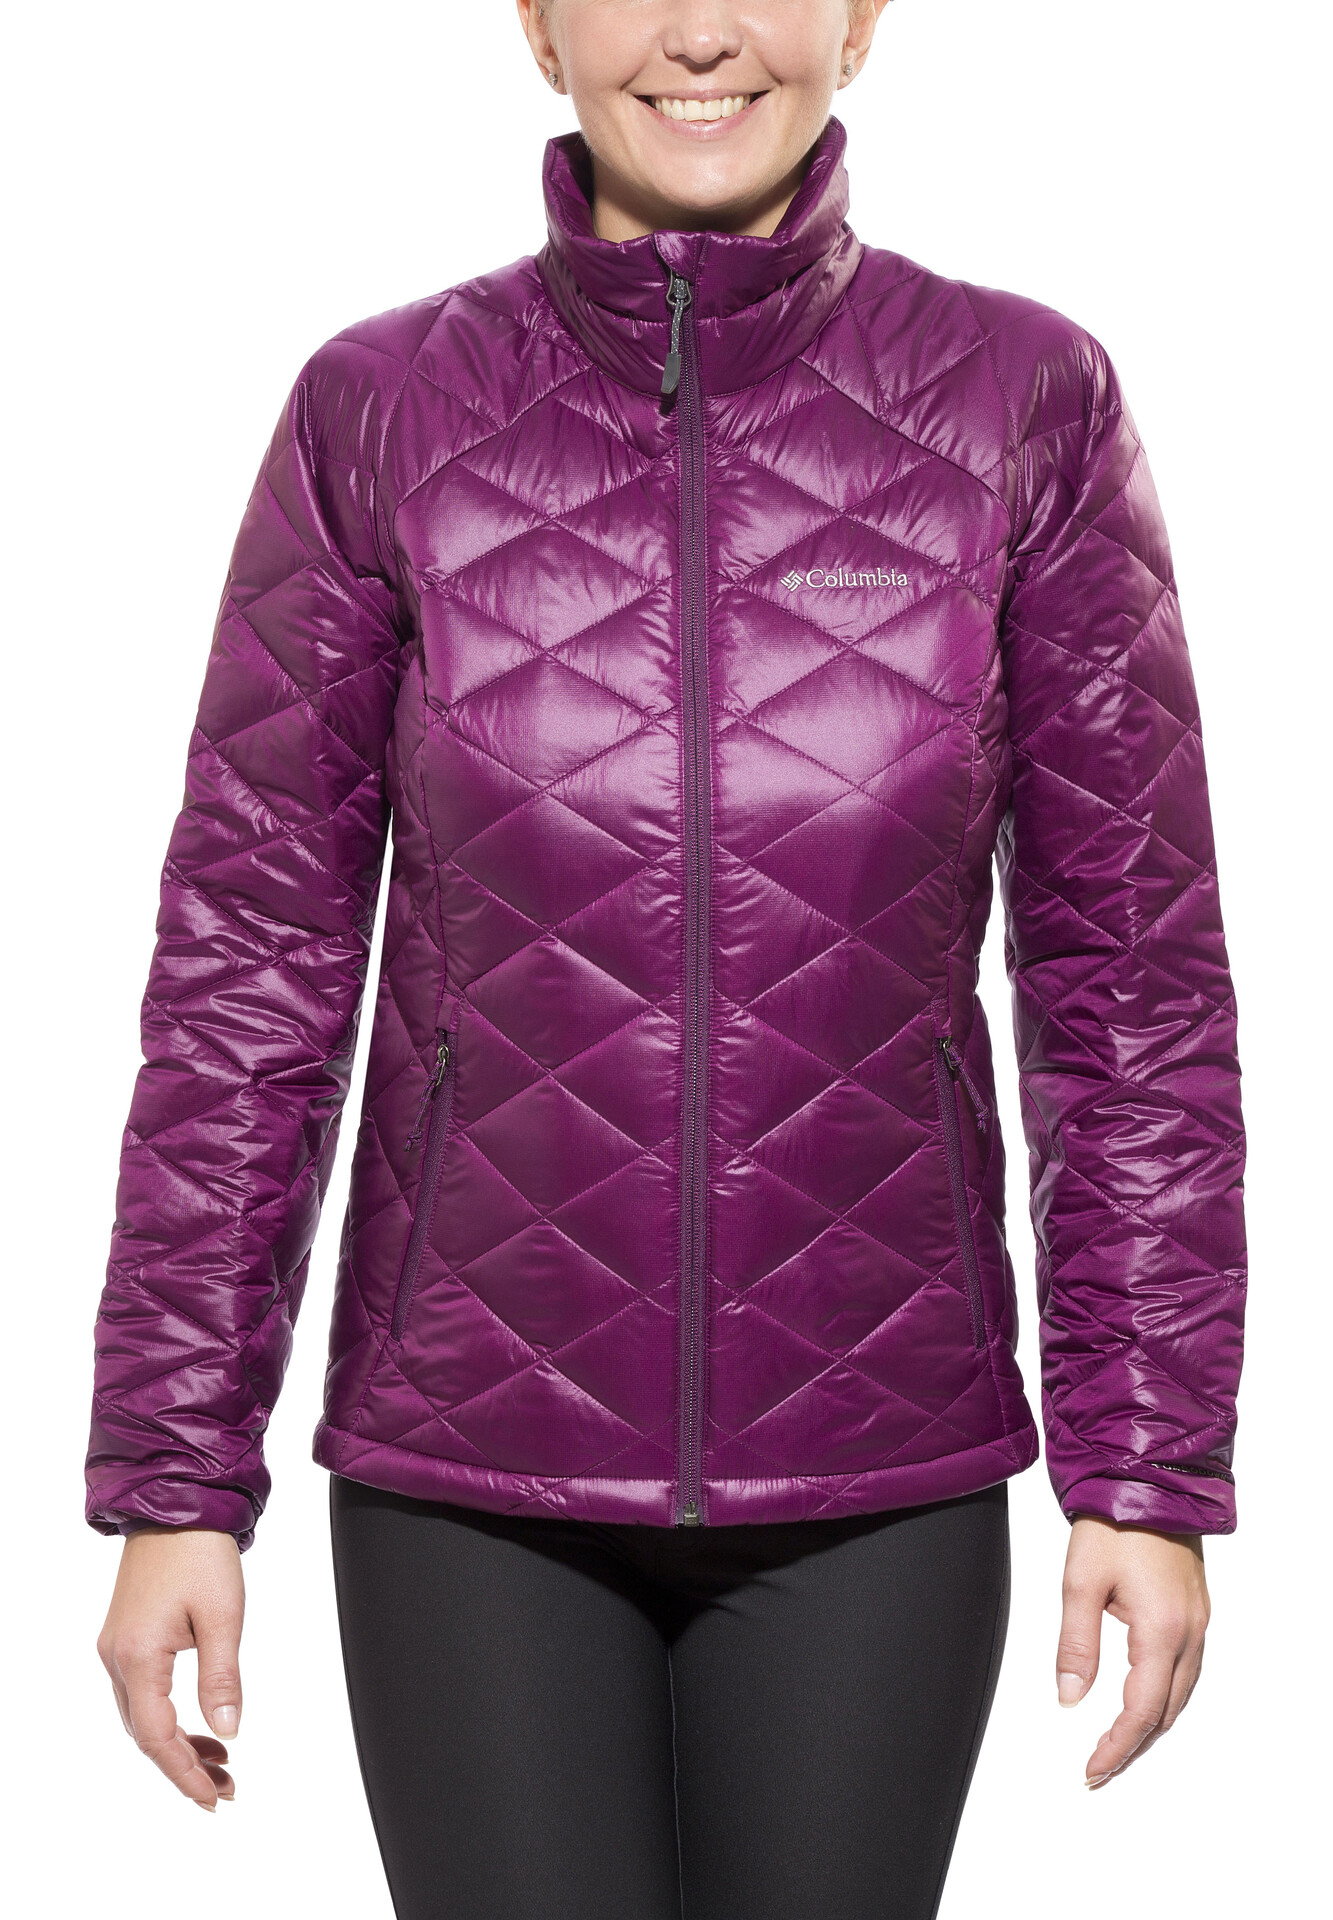 Turbodown Jacket Columbia Trask Mountain Dahlia WomenPurple 650 8wXk0PnO